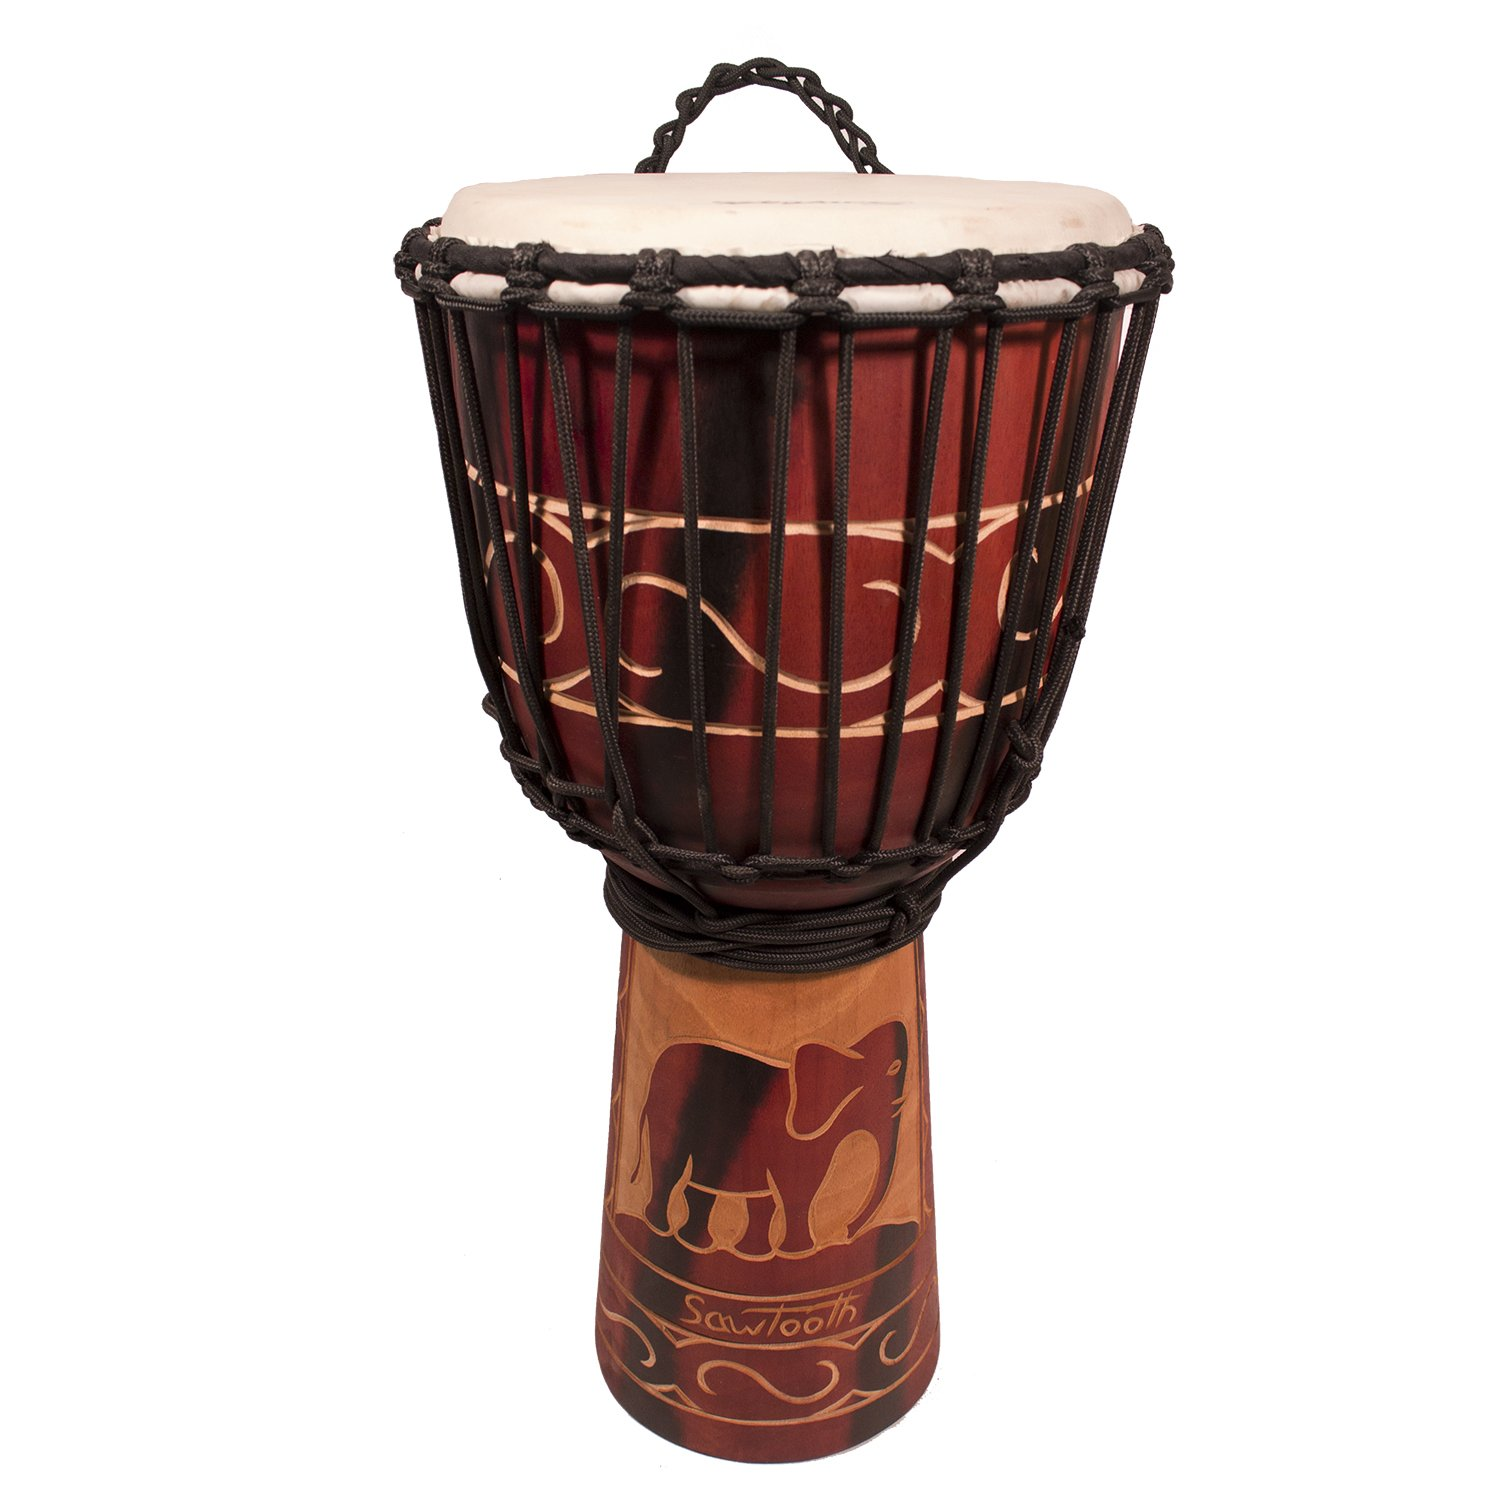 Sawtooth Harmony Series 12'' Hand Carved Elephant Design Rope Djembe by Sawtooth